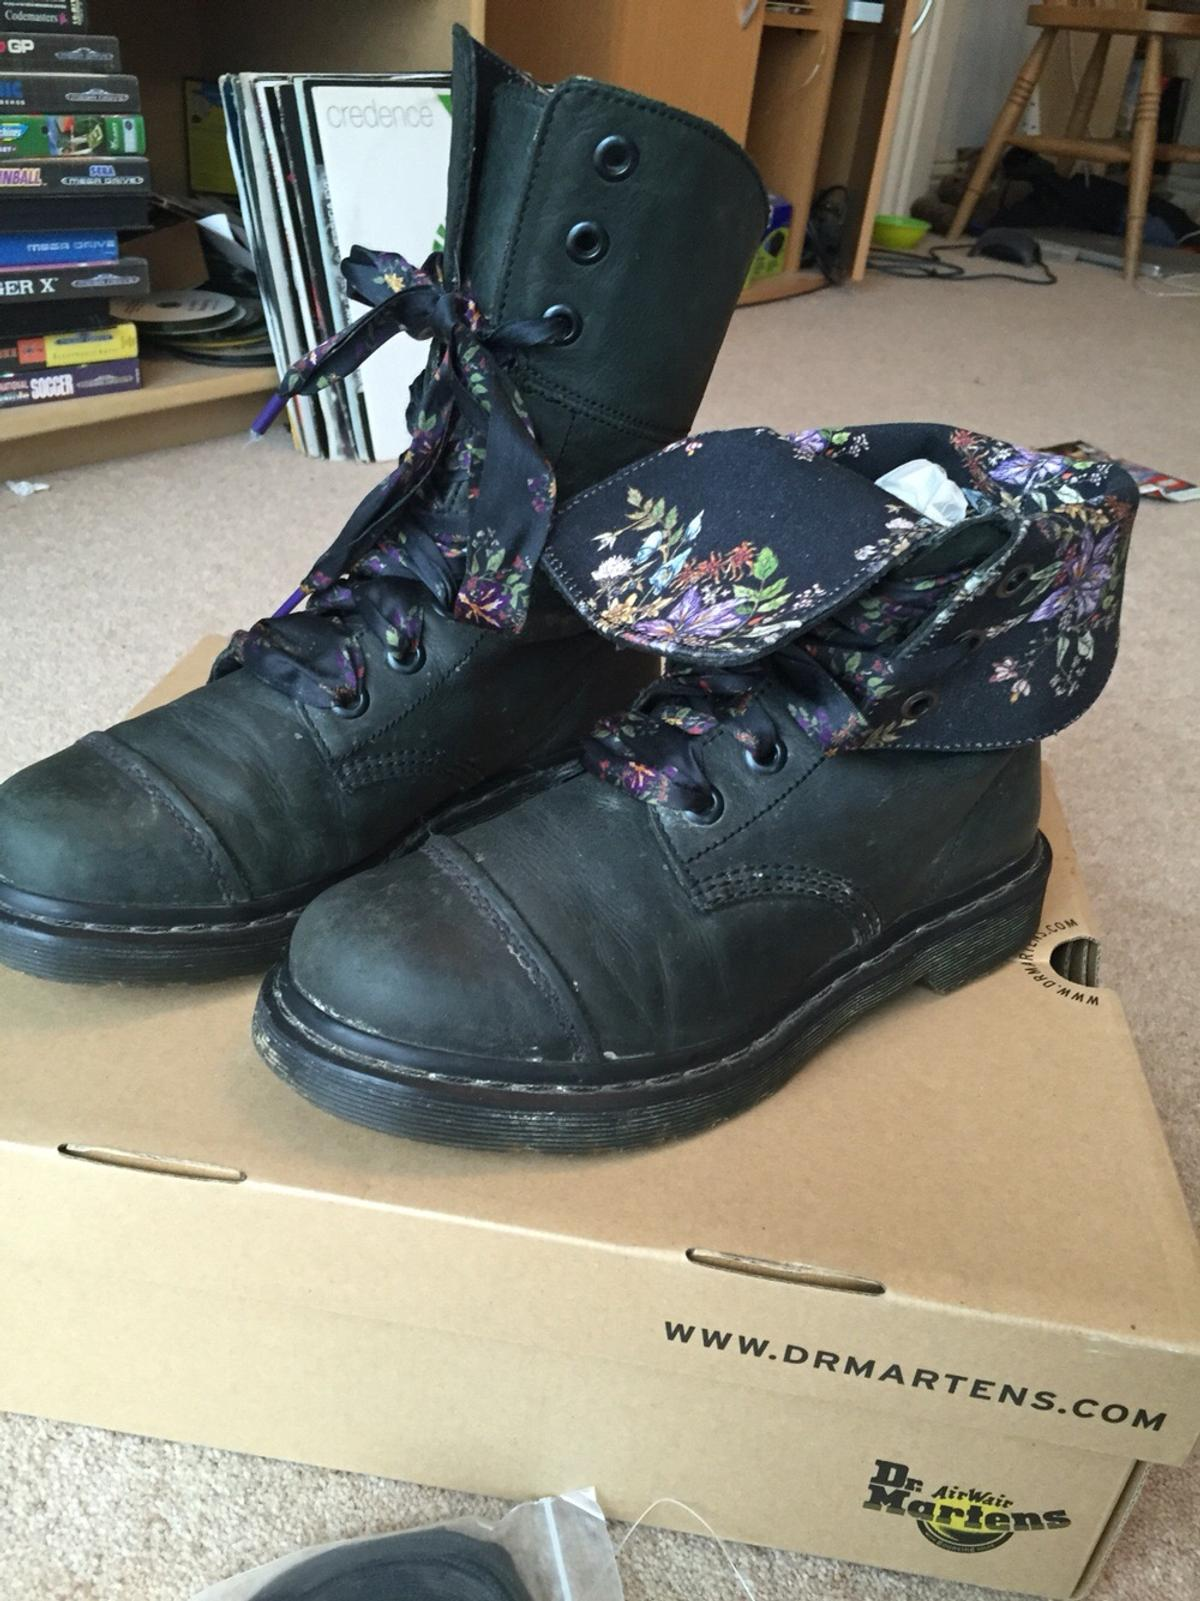 7df585af8 Dr Martens Triumph Aimilita Boots Size 41 in TN39 Rother for £30.00 ...